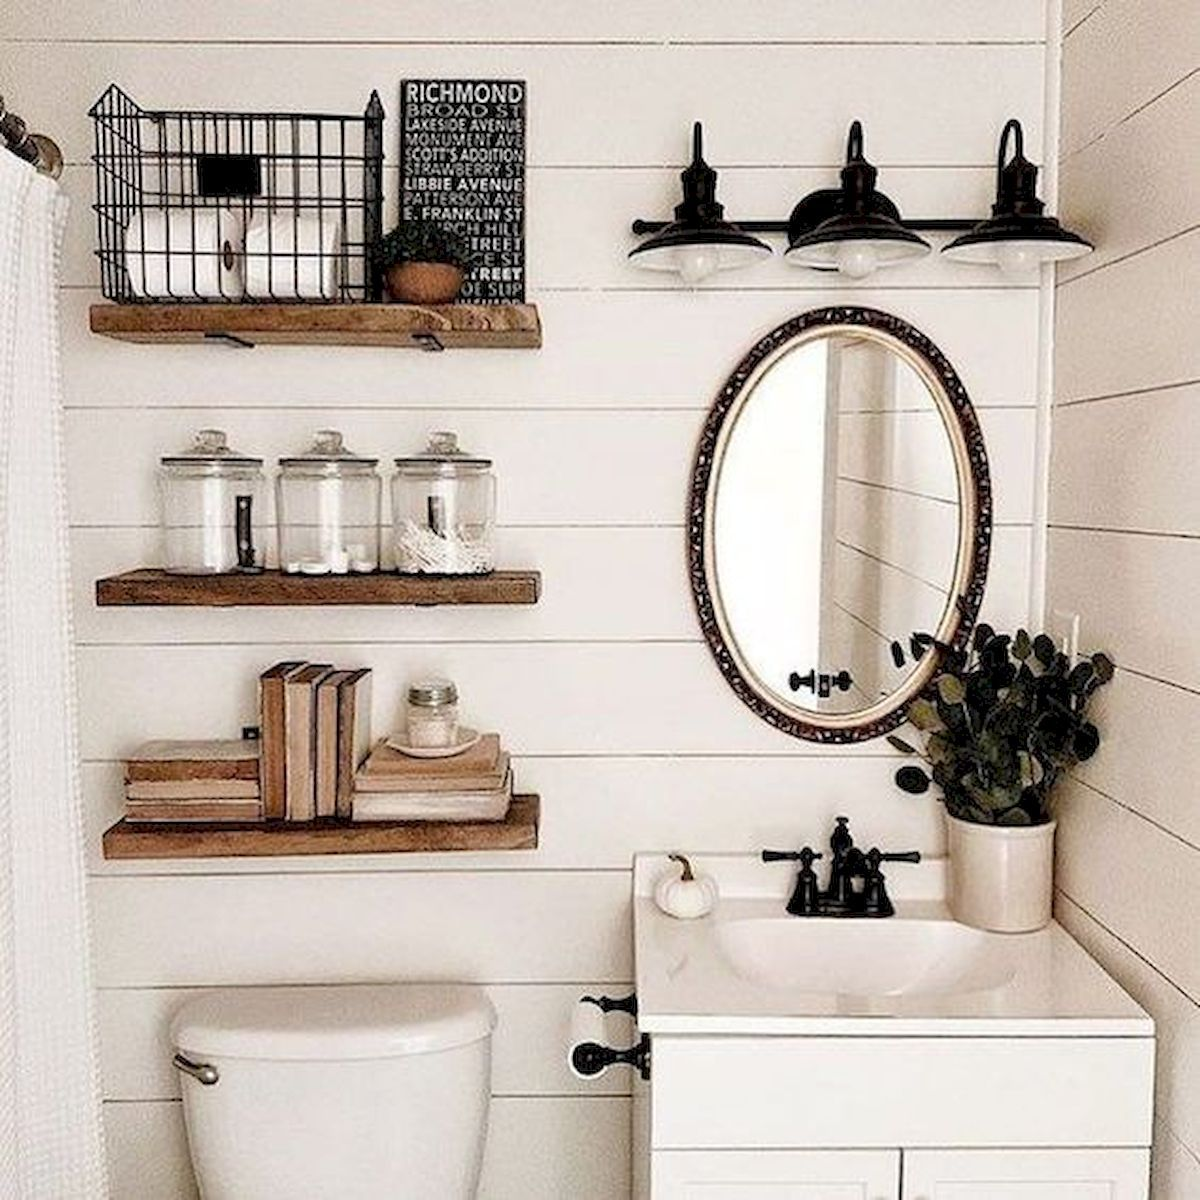 50 Awesome Wall Decoration Ideas for Bathroom Small